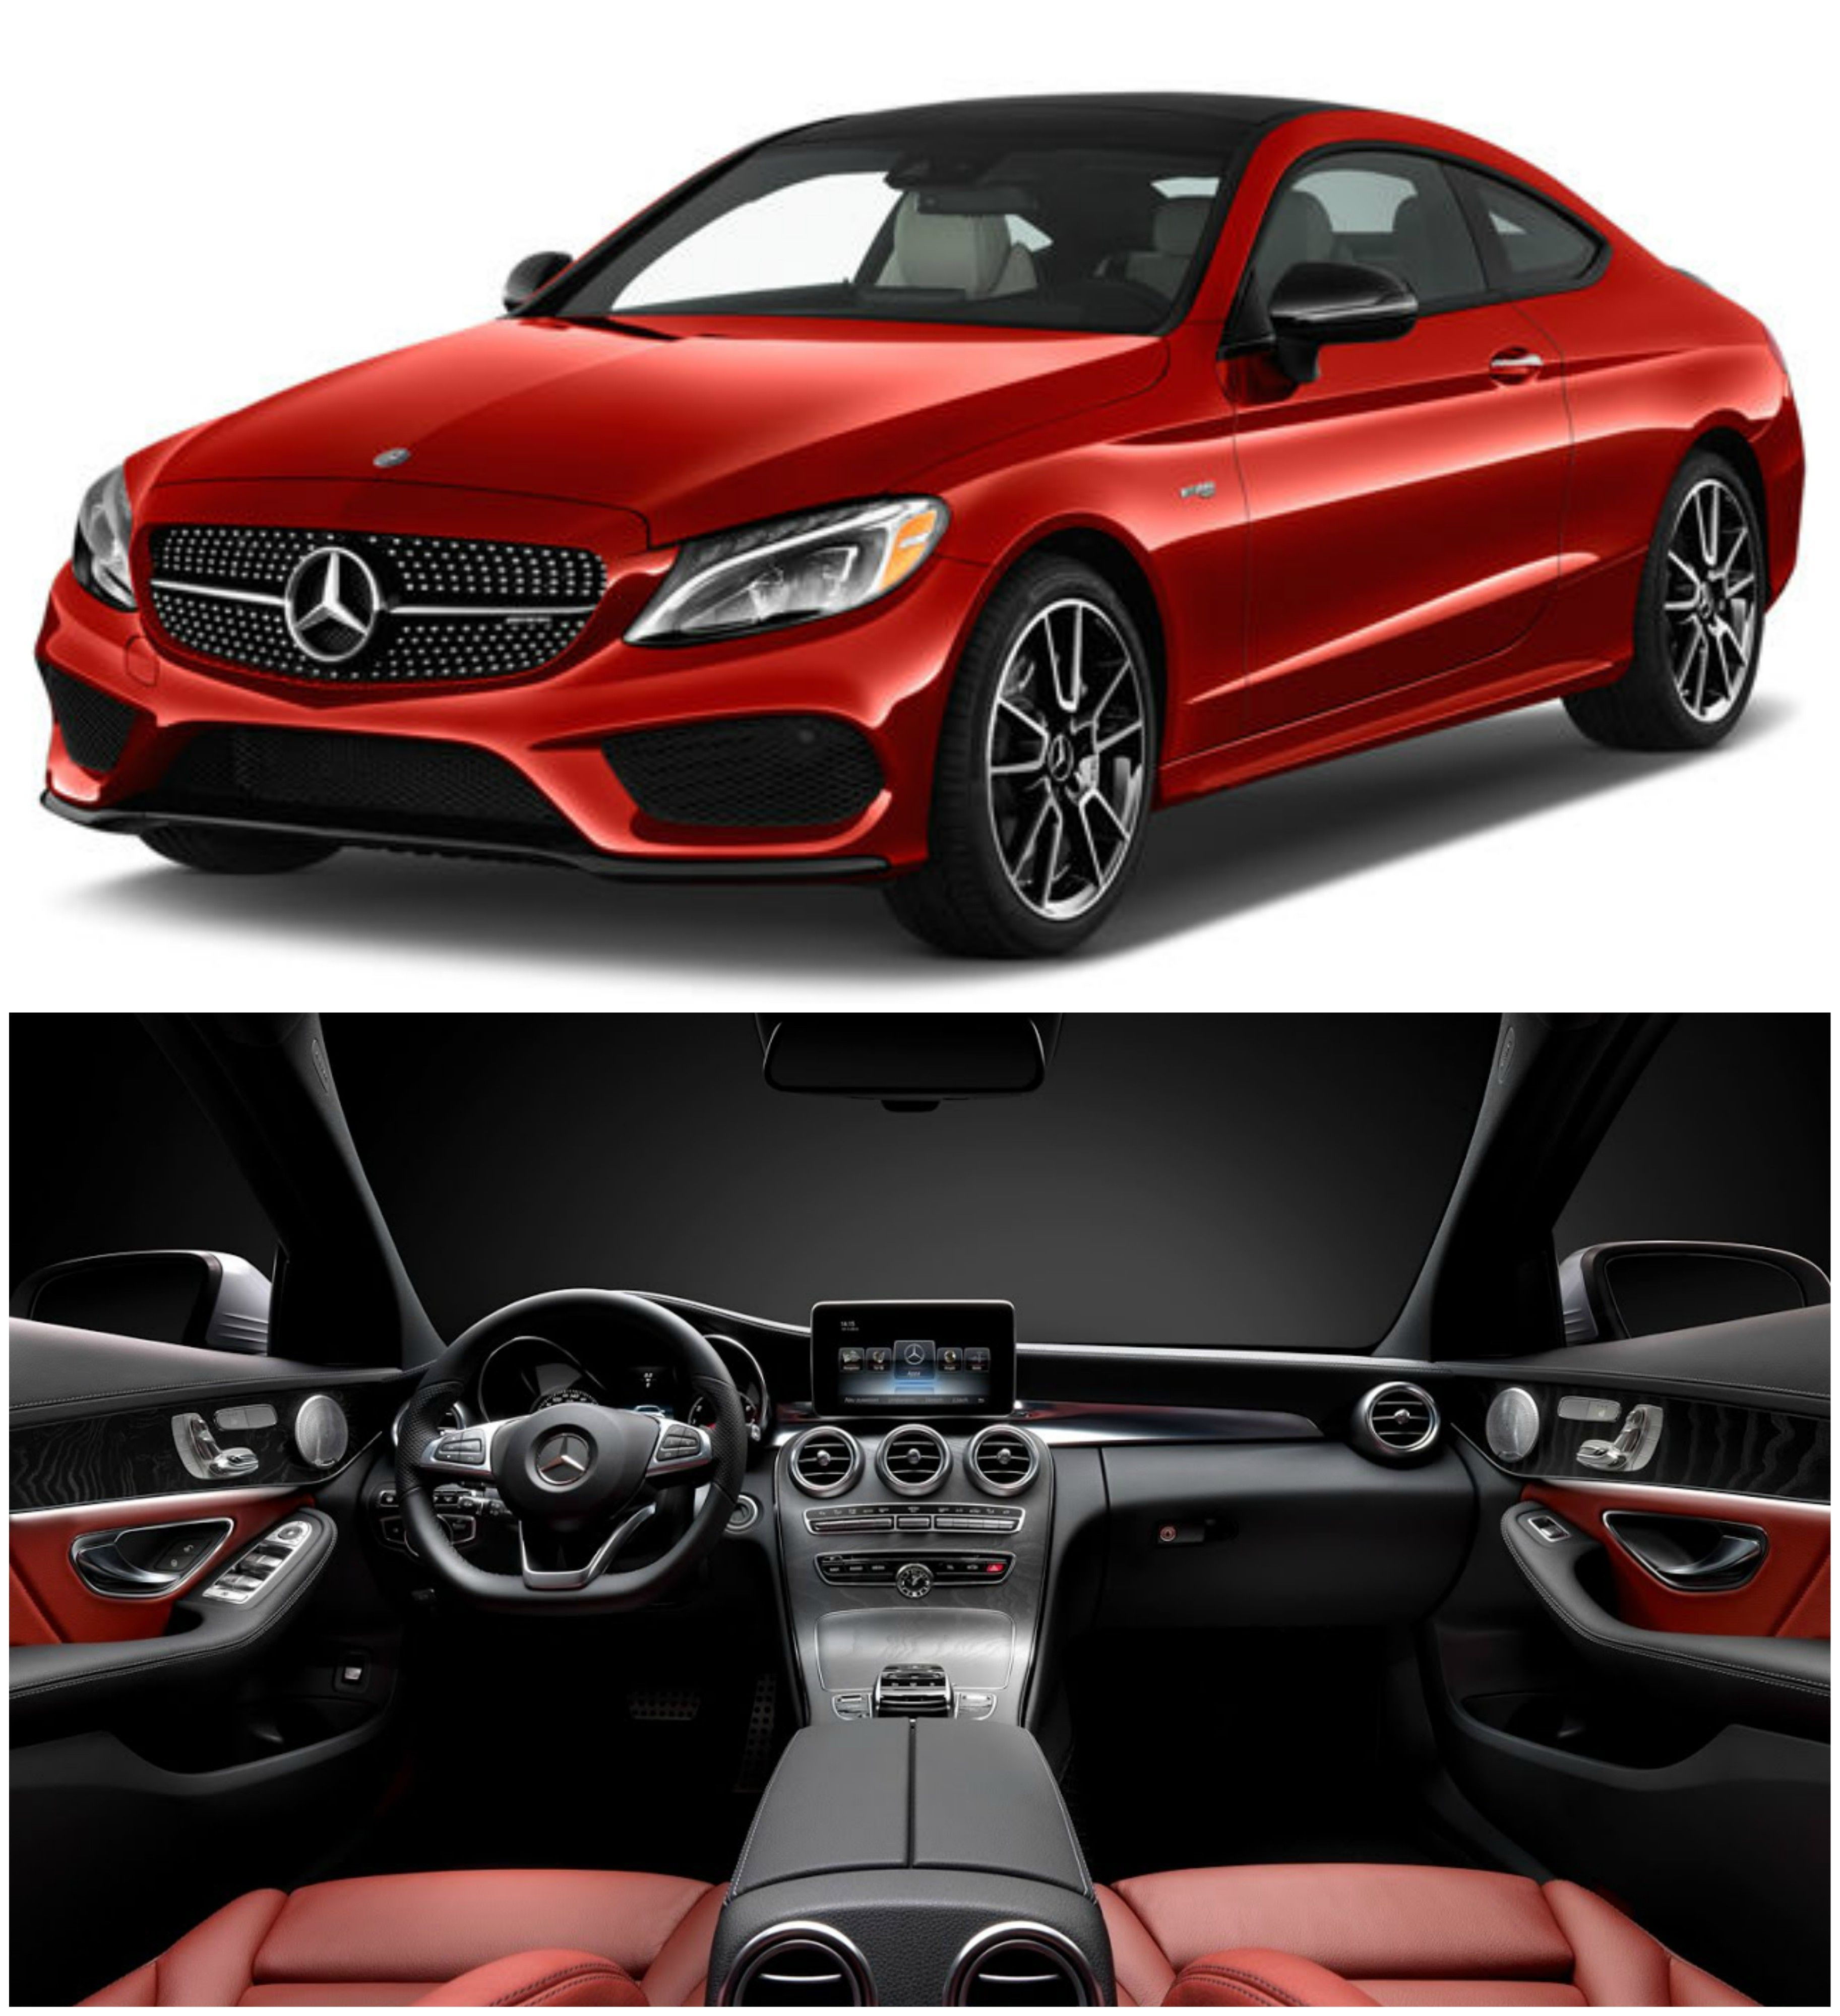 The 2017 Mercedes Benz C Class Is A Small Luxury Car That Represents One Of The Best Values On The Market For Its Class Small Luxury Cars Cars For Sale Car